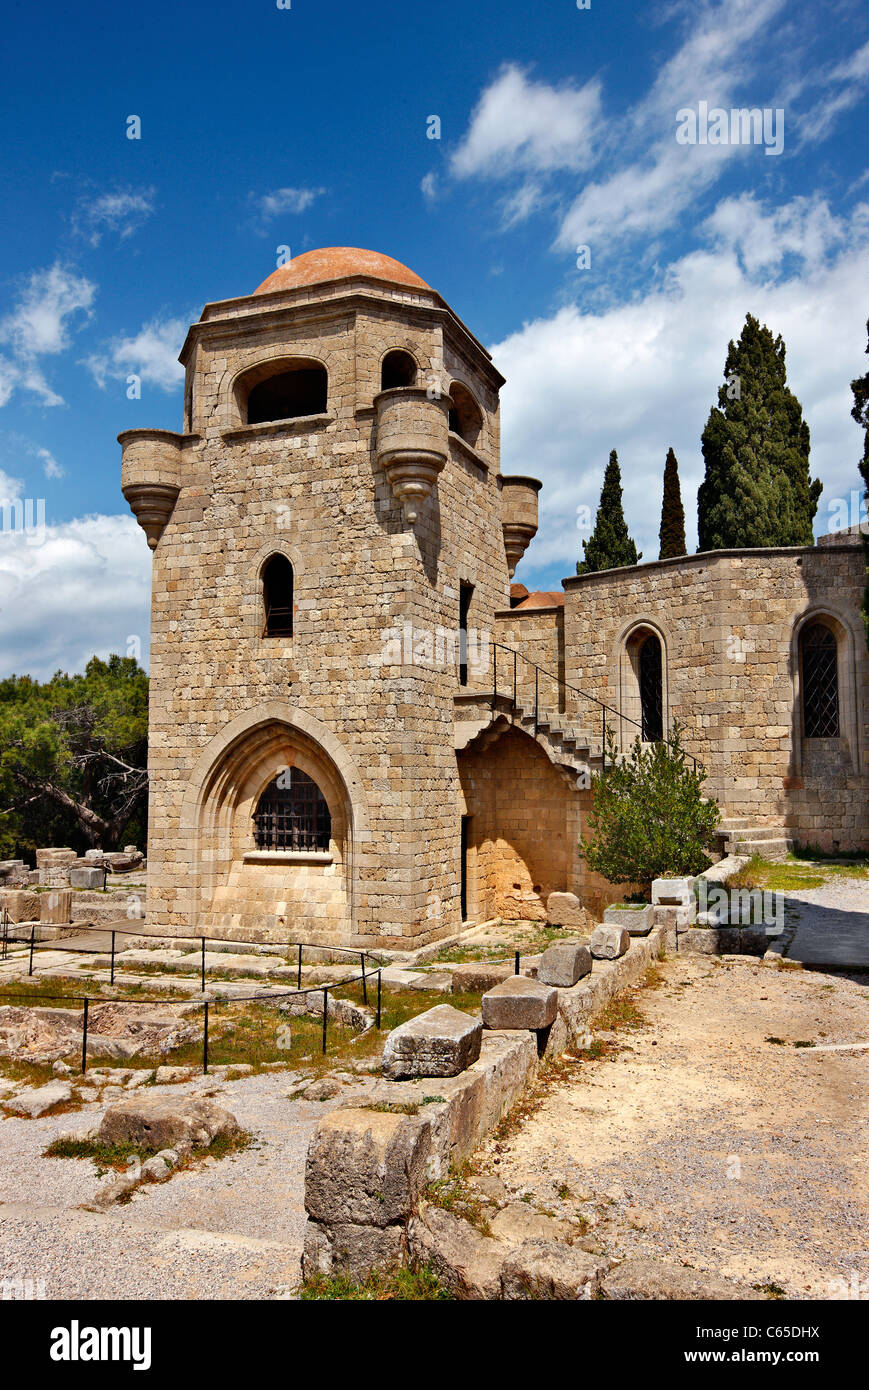 Partial view of the monastery of Filerimos, close to Trianta village, Rhodes island, Dodecanese, Greece. - Stock Image